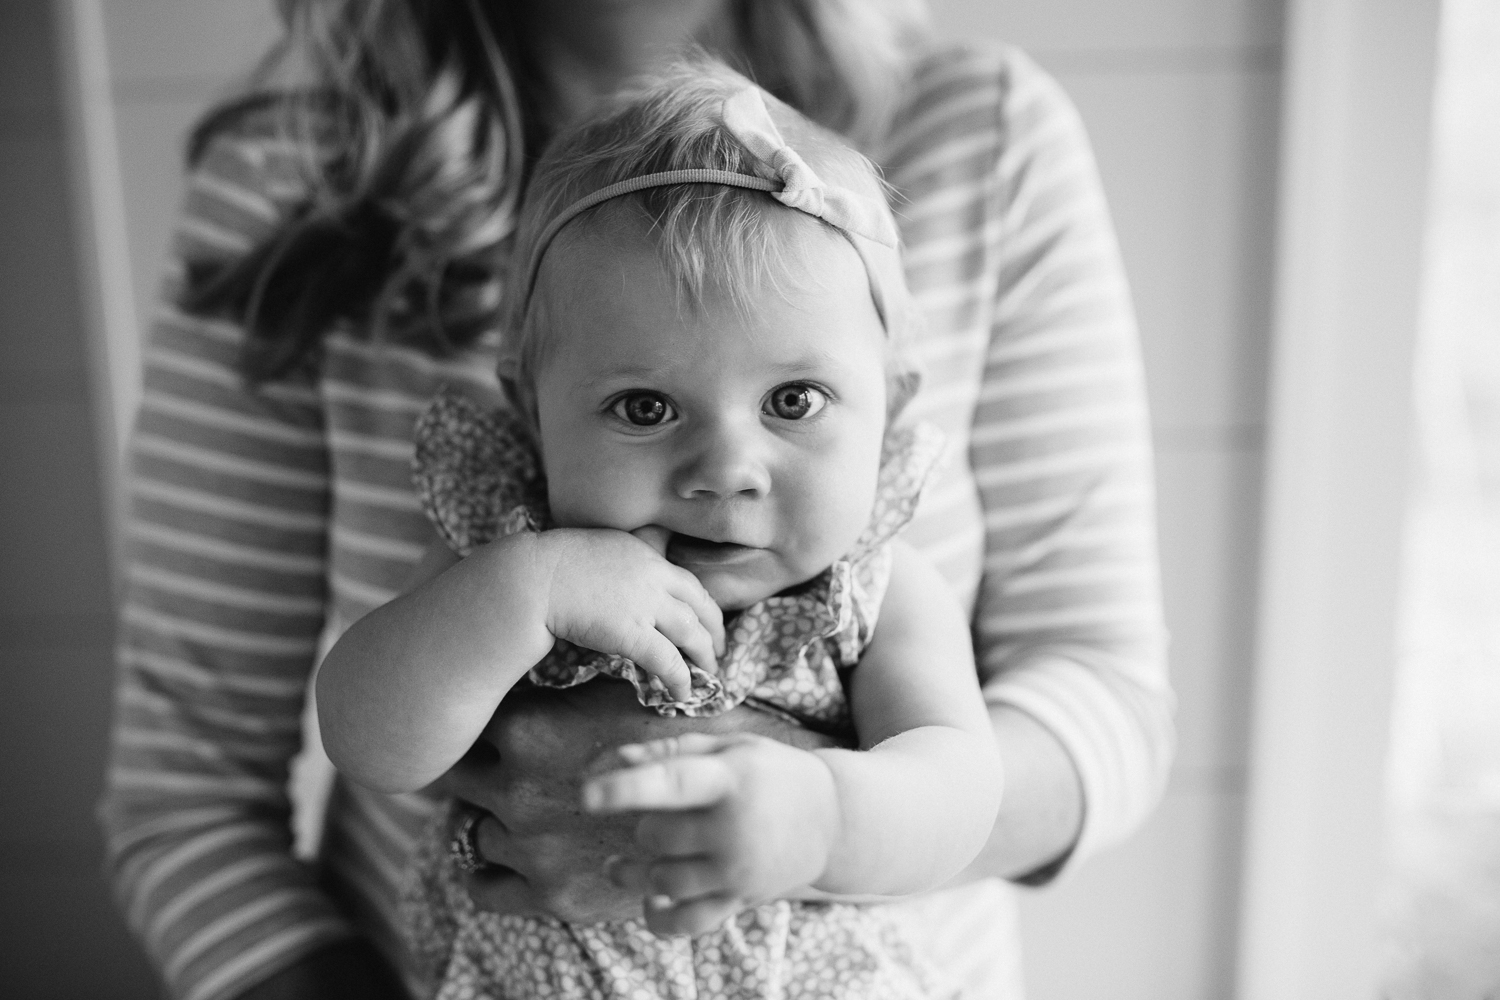 6 month old baby girl with blonde hair and blue eyes in mom's arms chewing on finger and looking at camera - Barrie In-home Family Photos